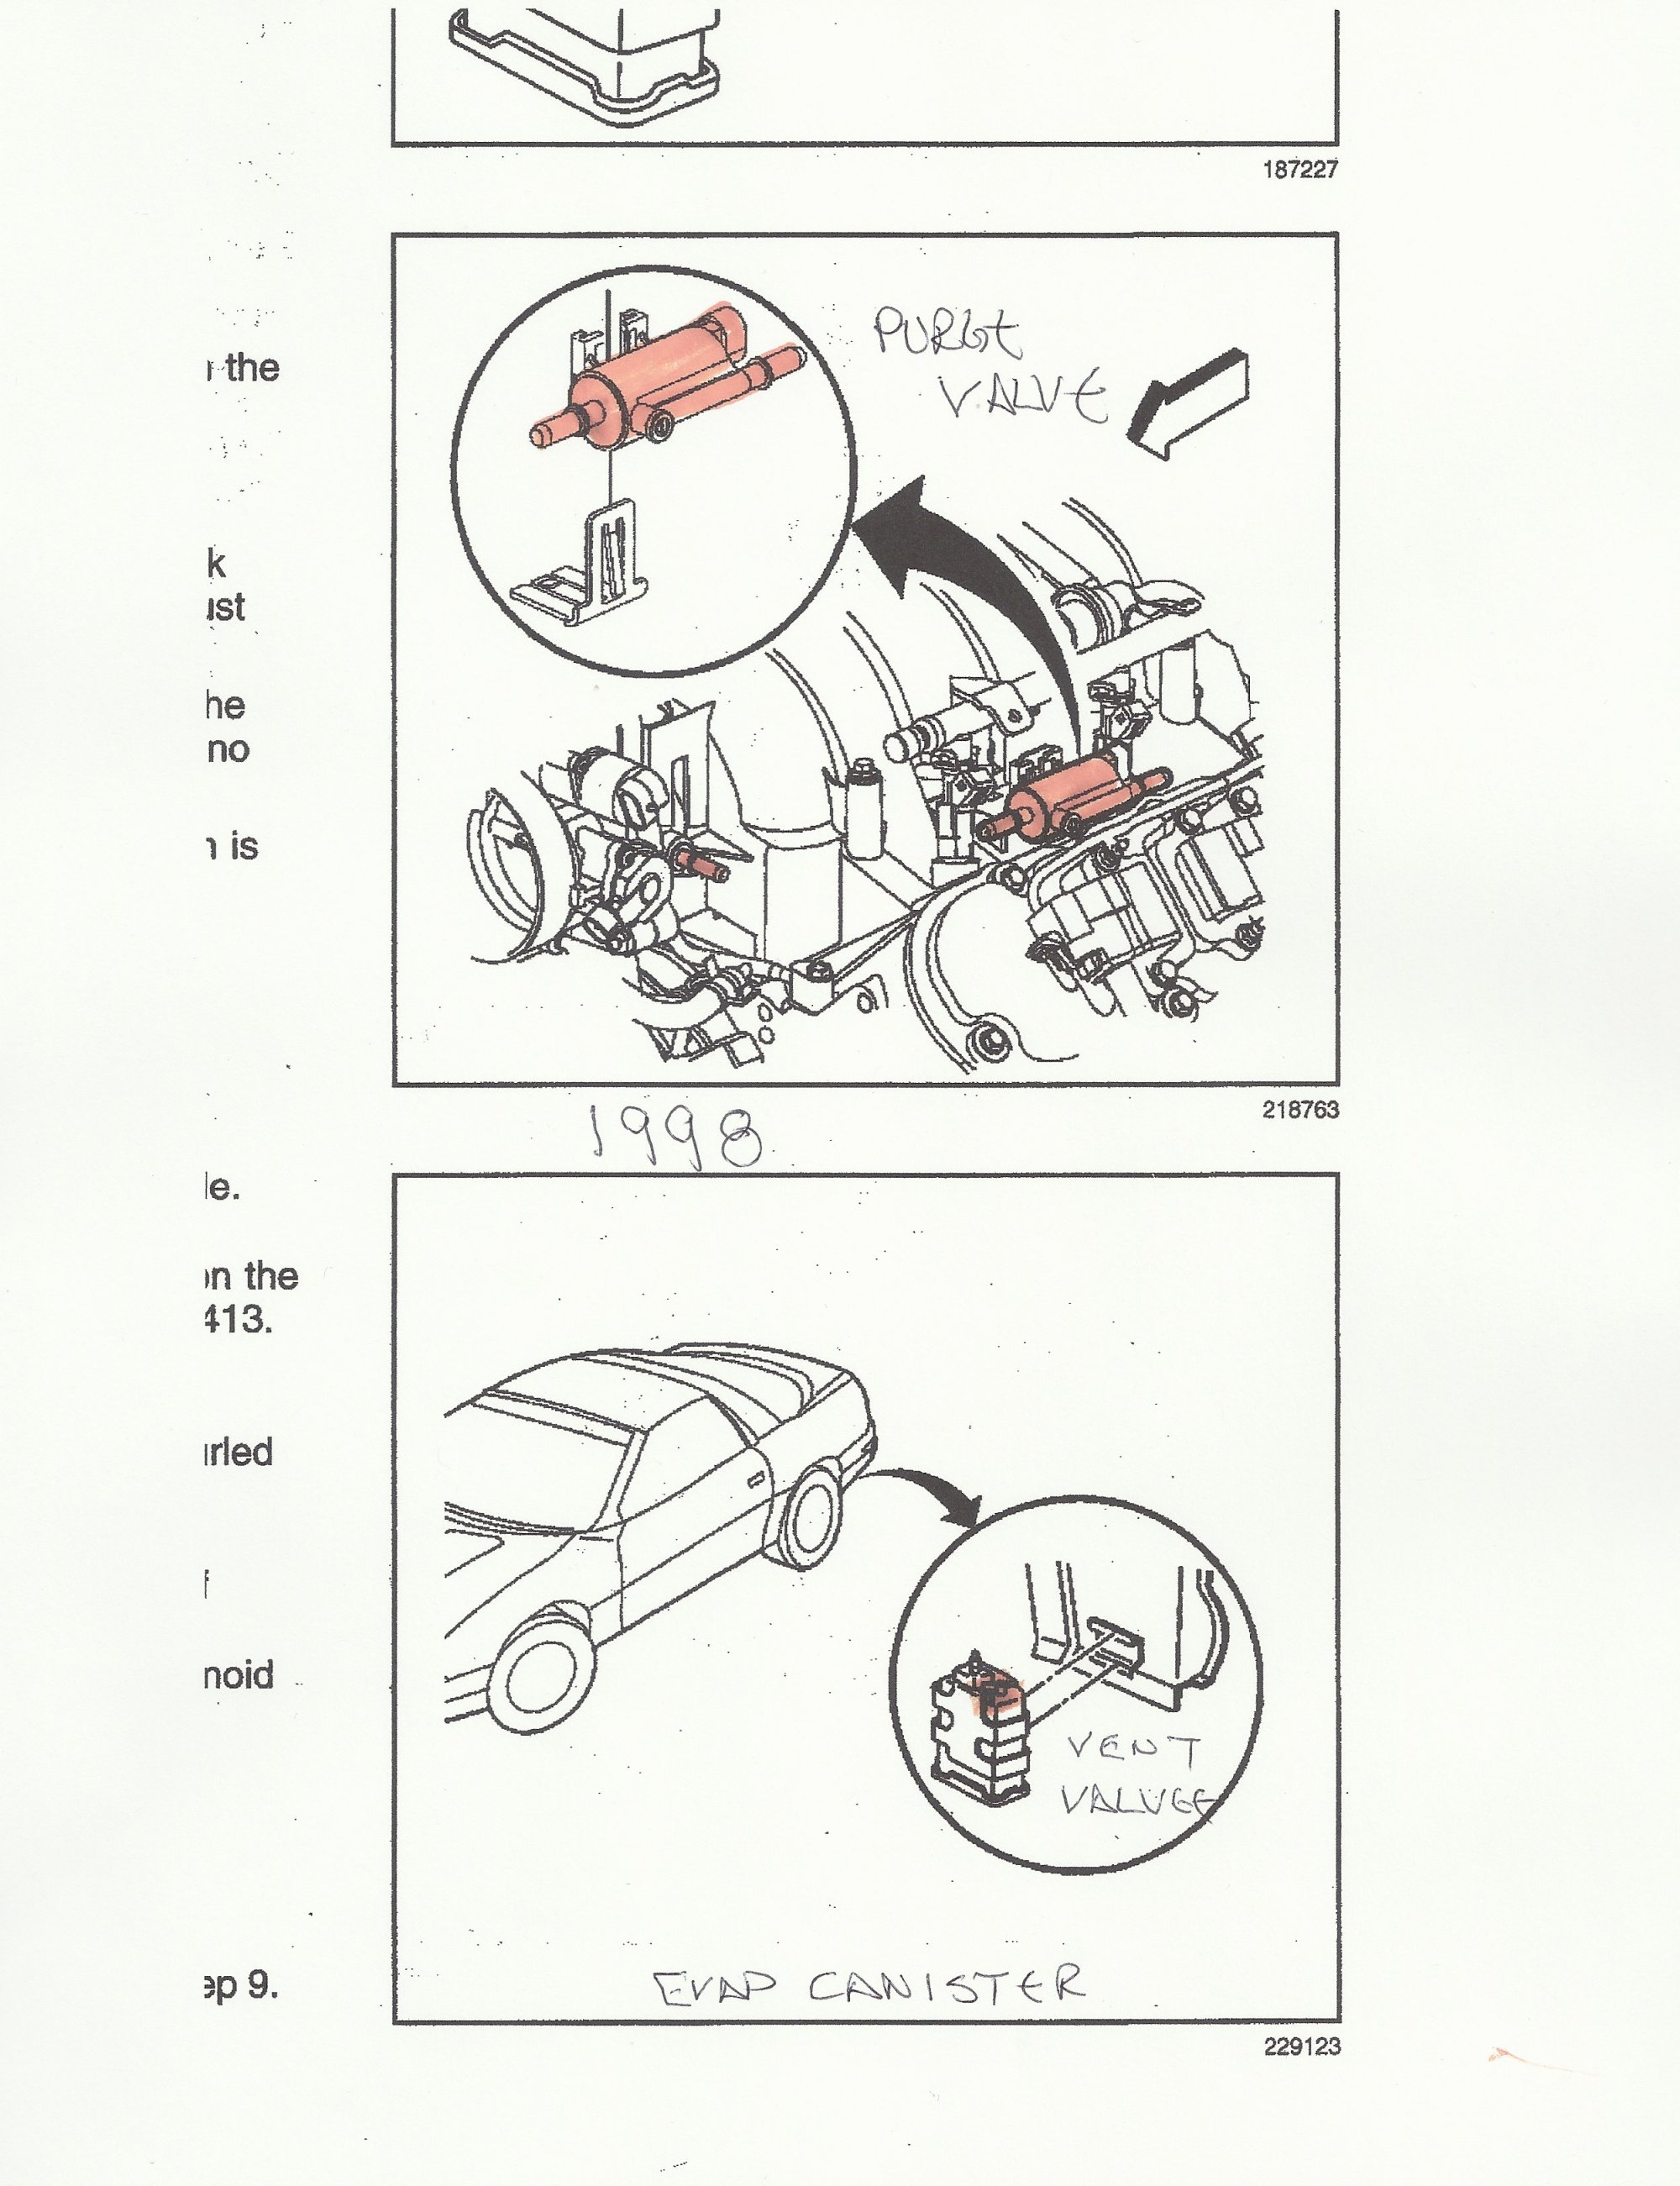 hight resolution of 98 camaro engine diagram wiring diagram centre 98 camaro engine diagram